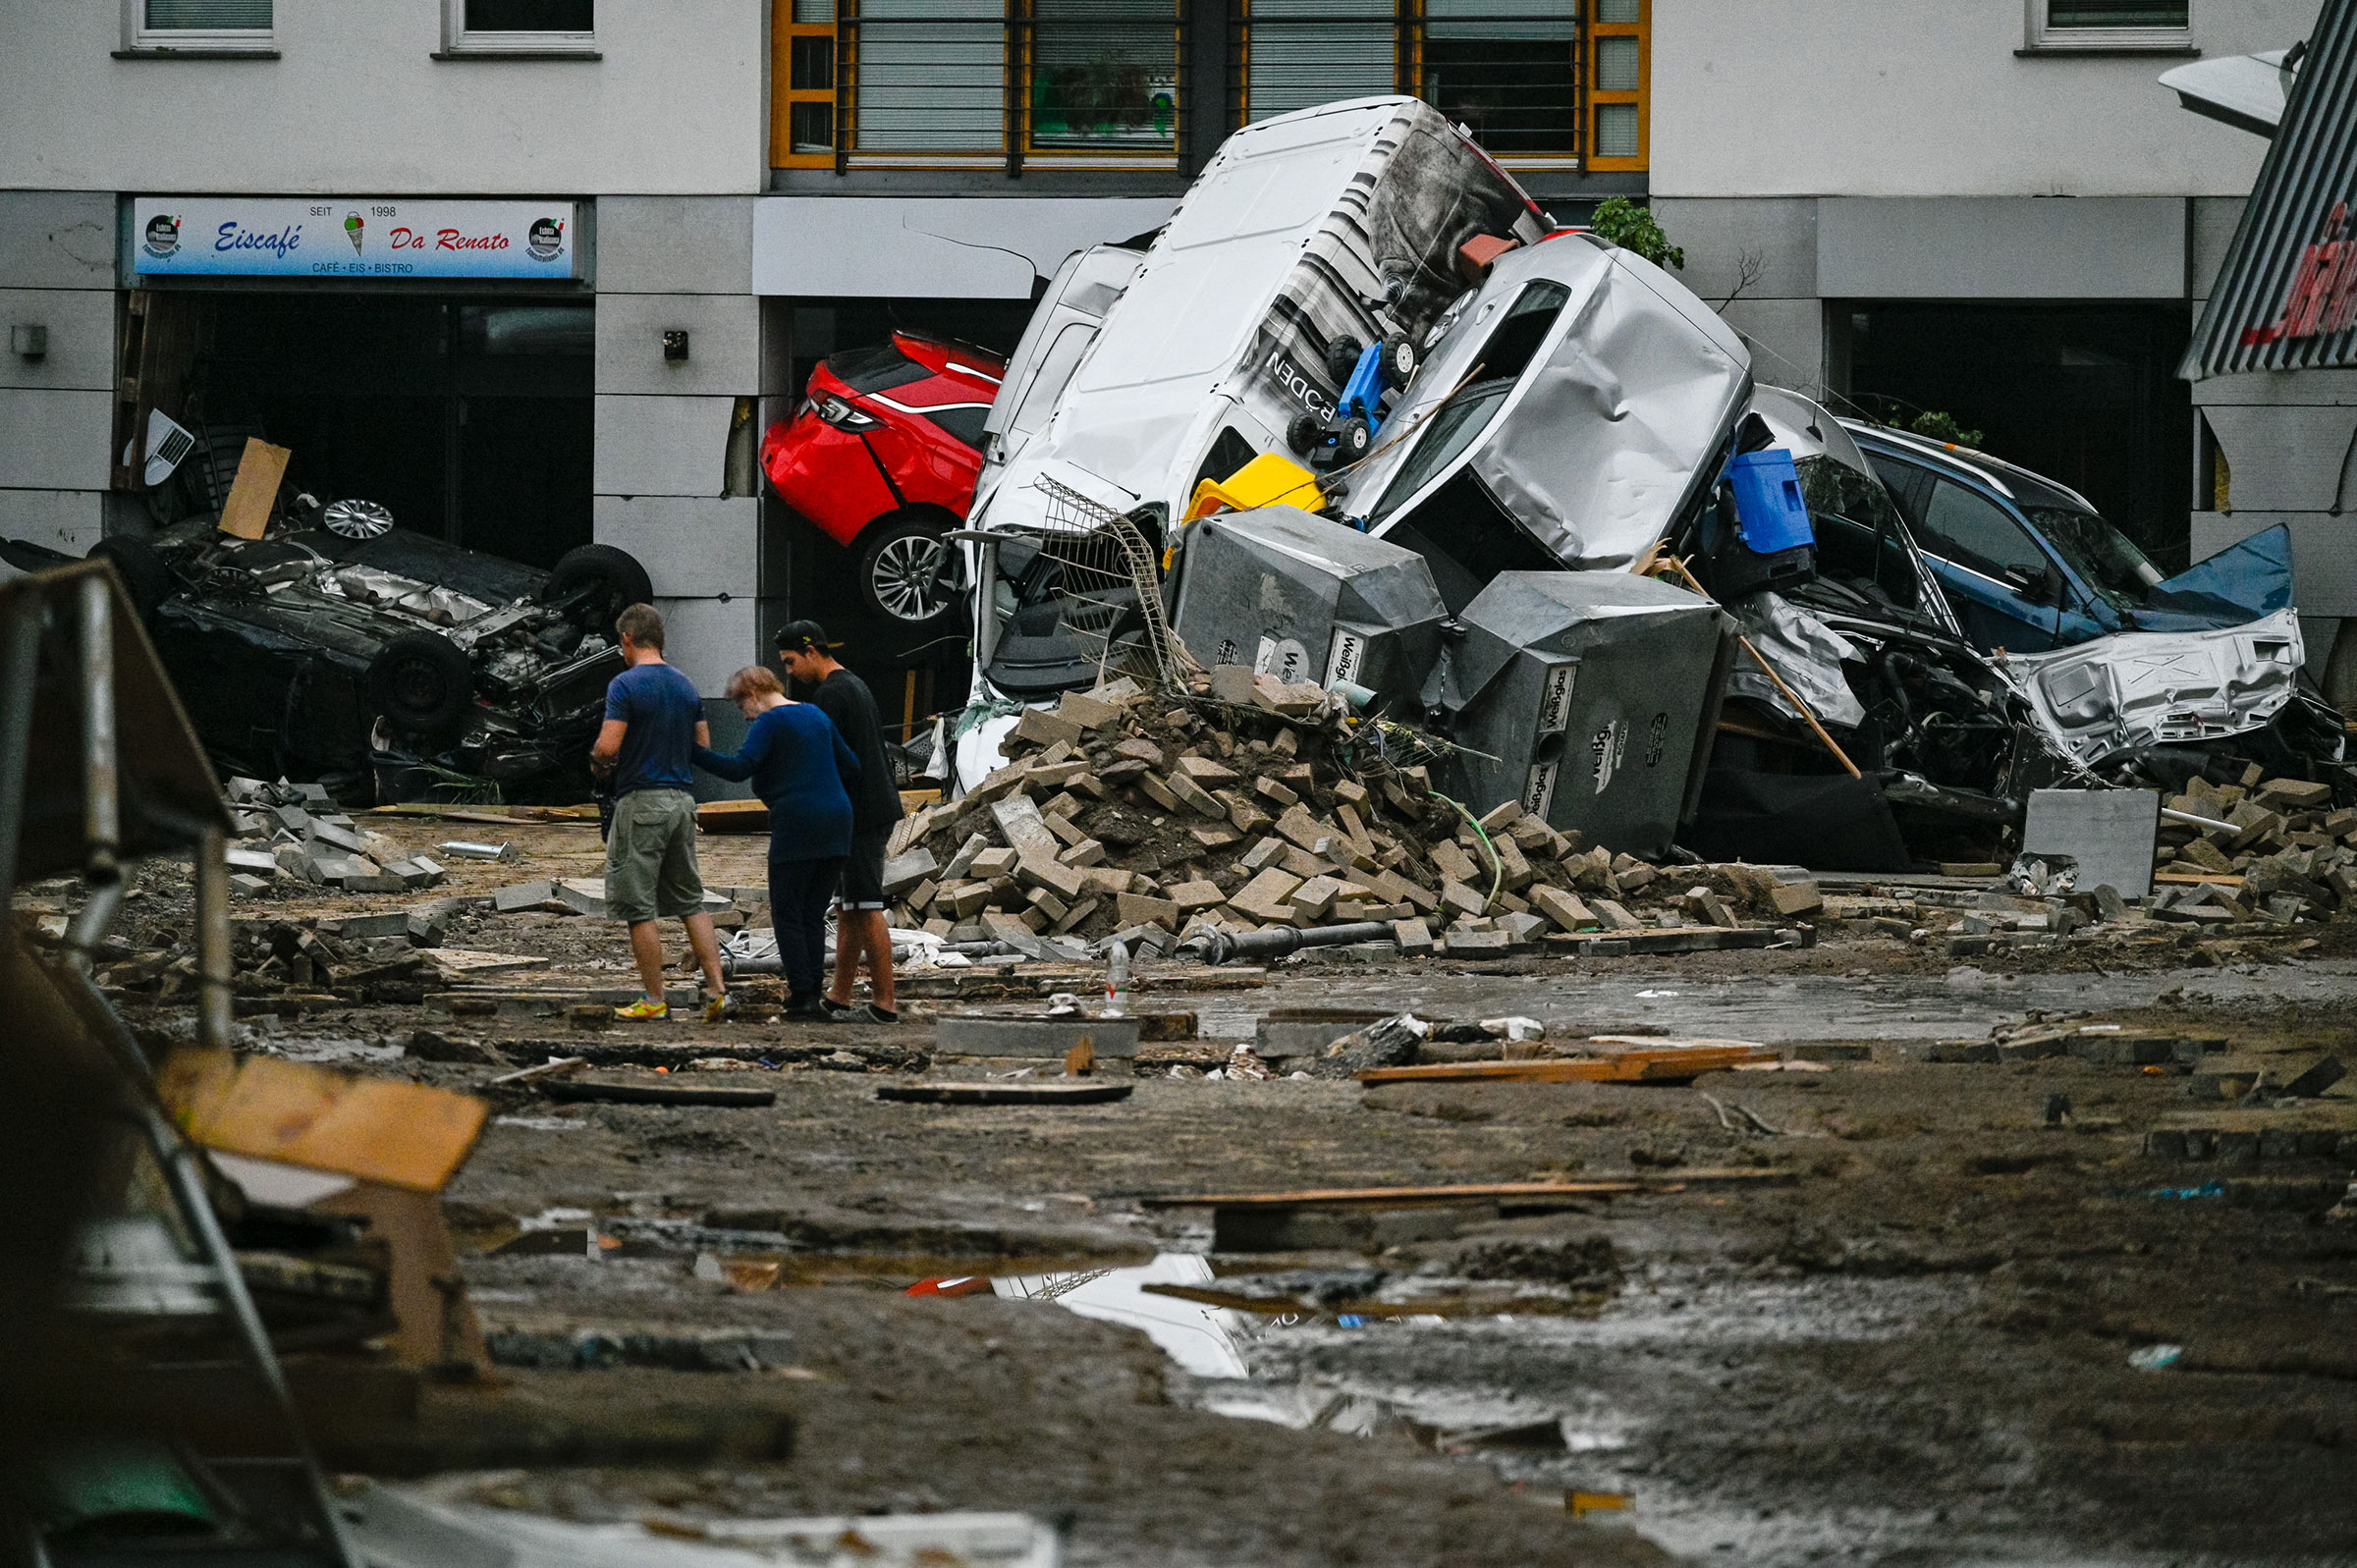 Debris and damage caused by flooding are seen in Bad Neuenahr, Germany, on July 16.